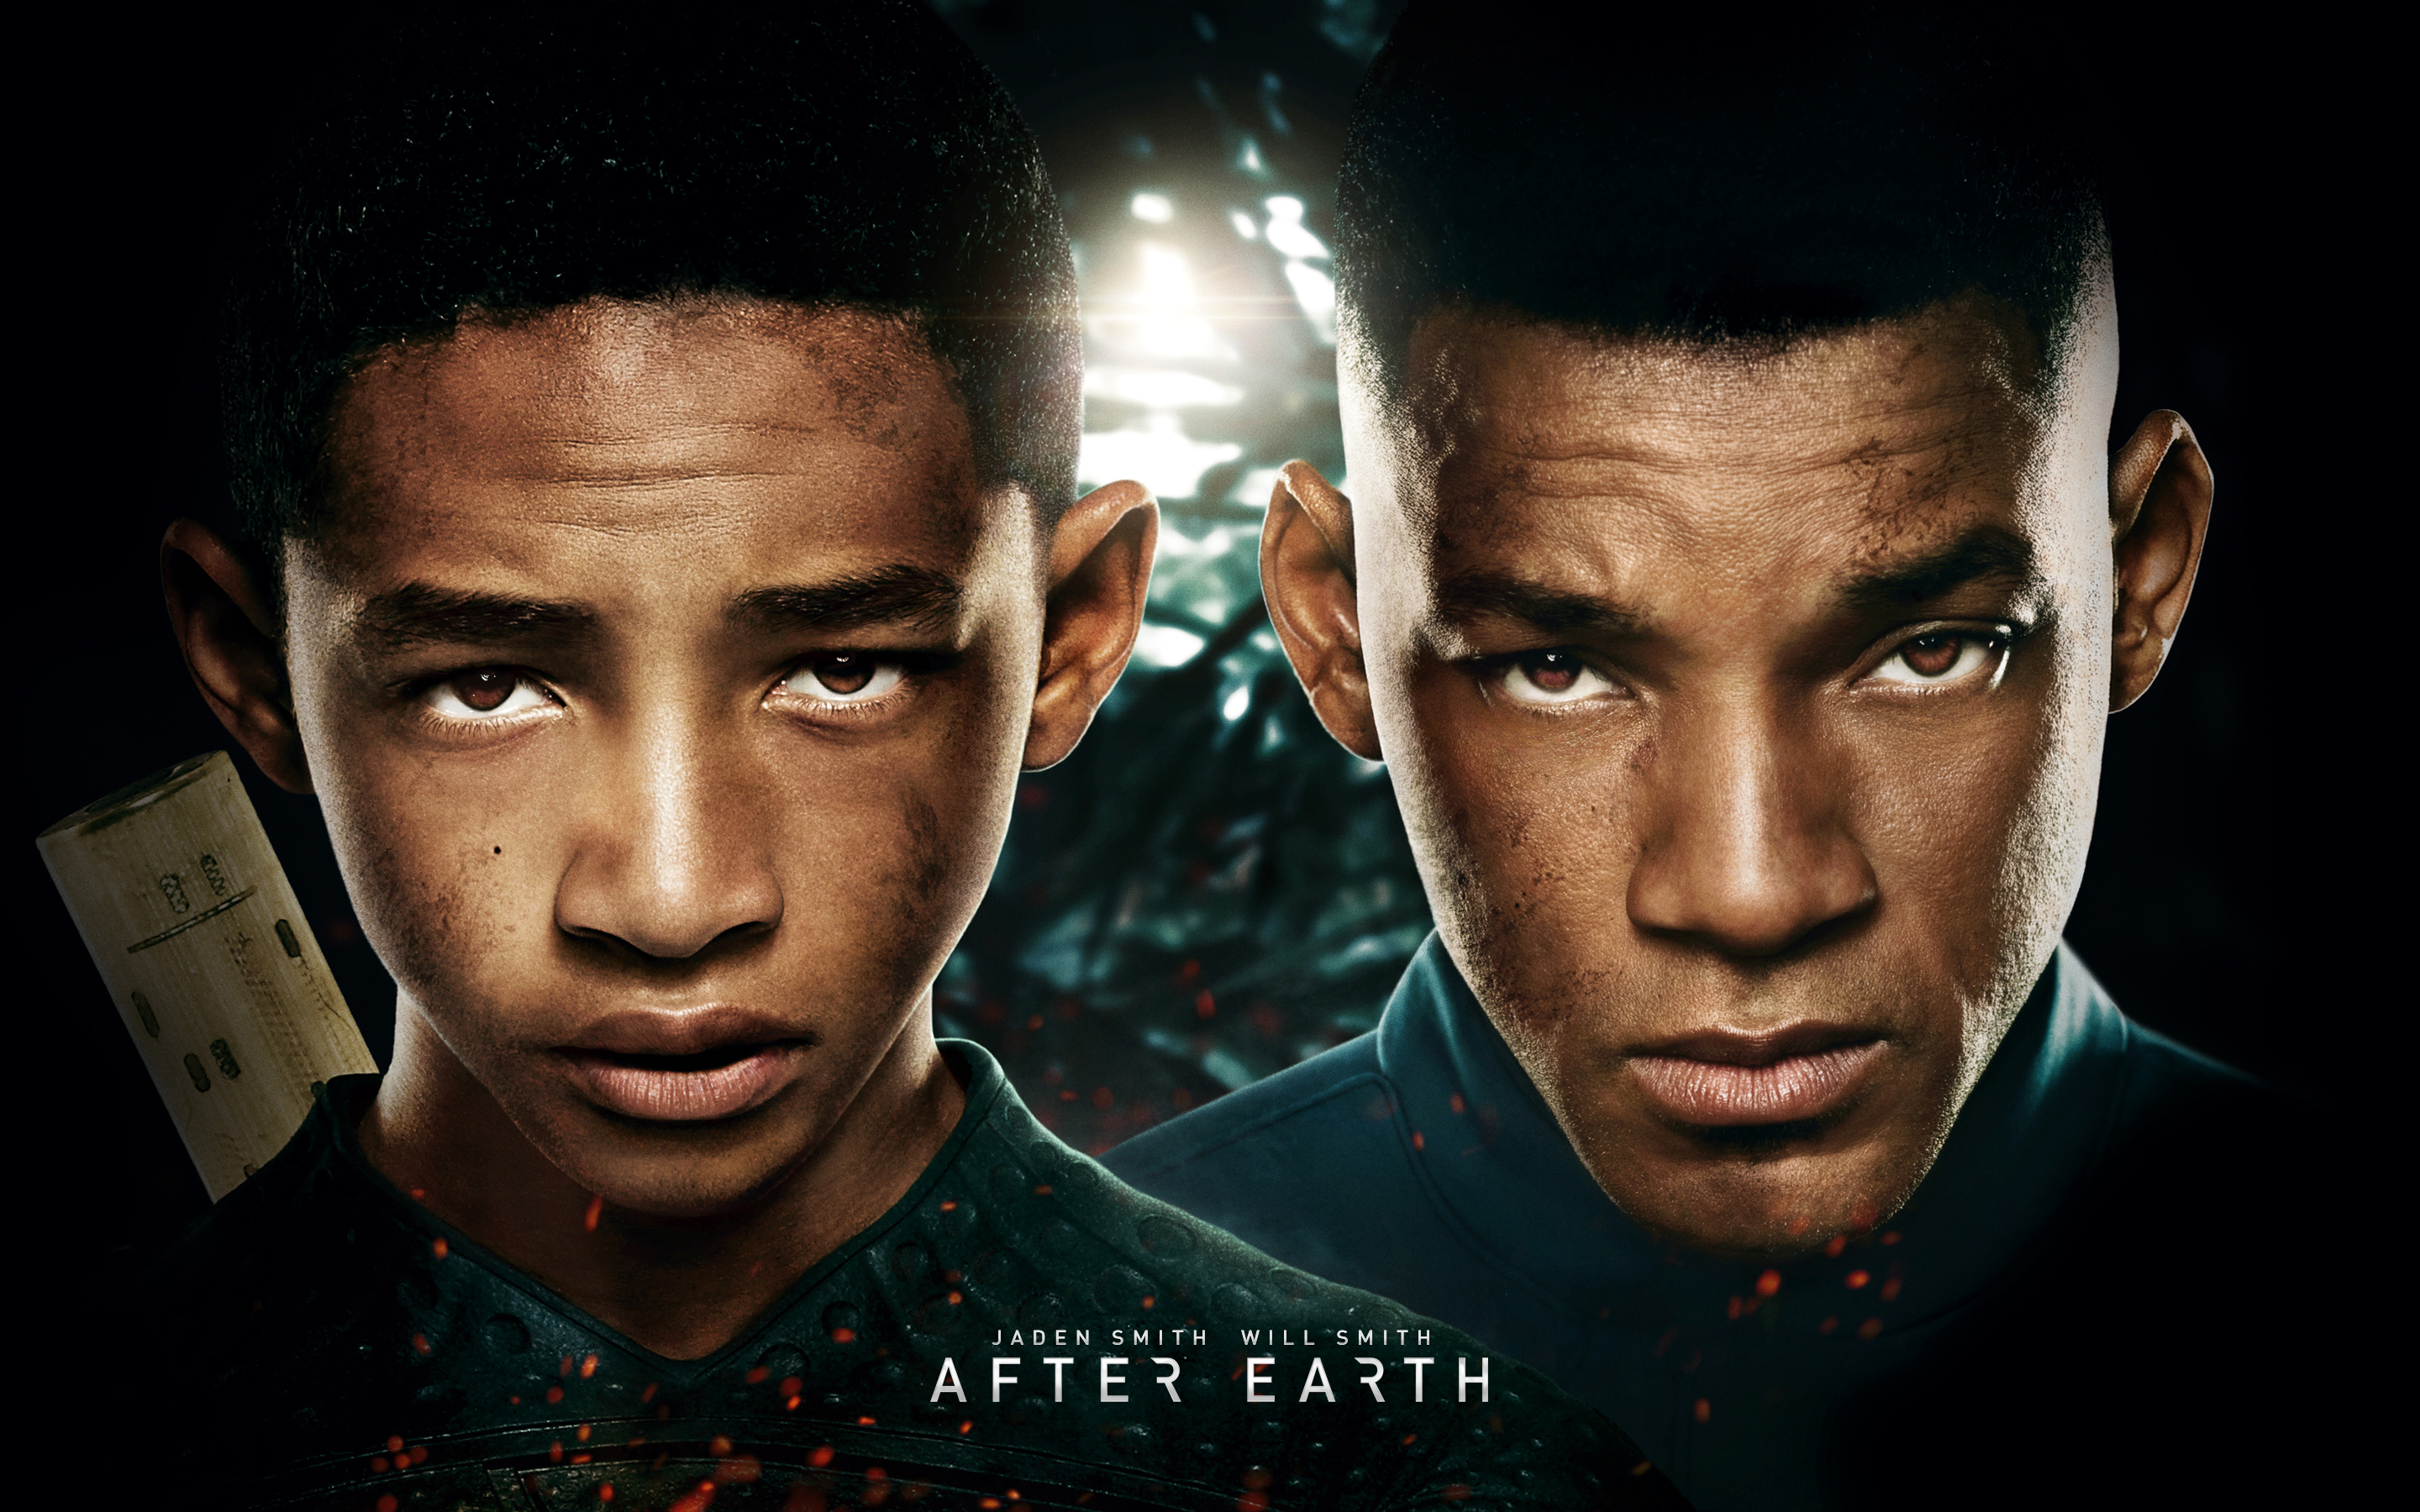 http://scriptshadow.net/wp-content/uploads/2013/06/after-earth-movie-2013.jpg